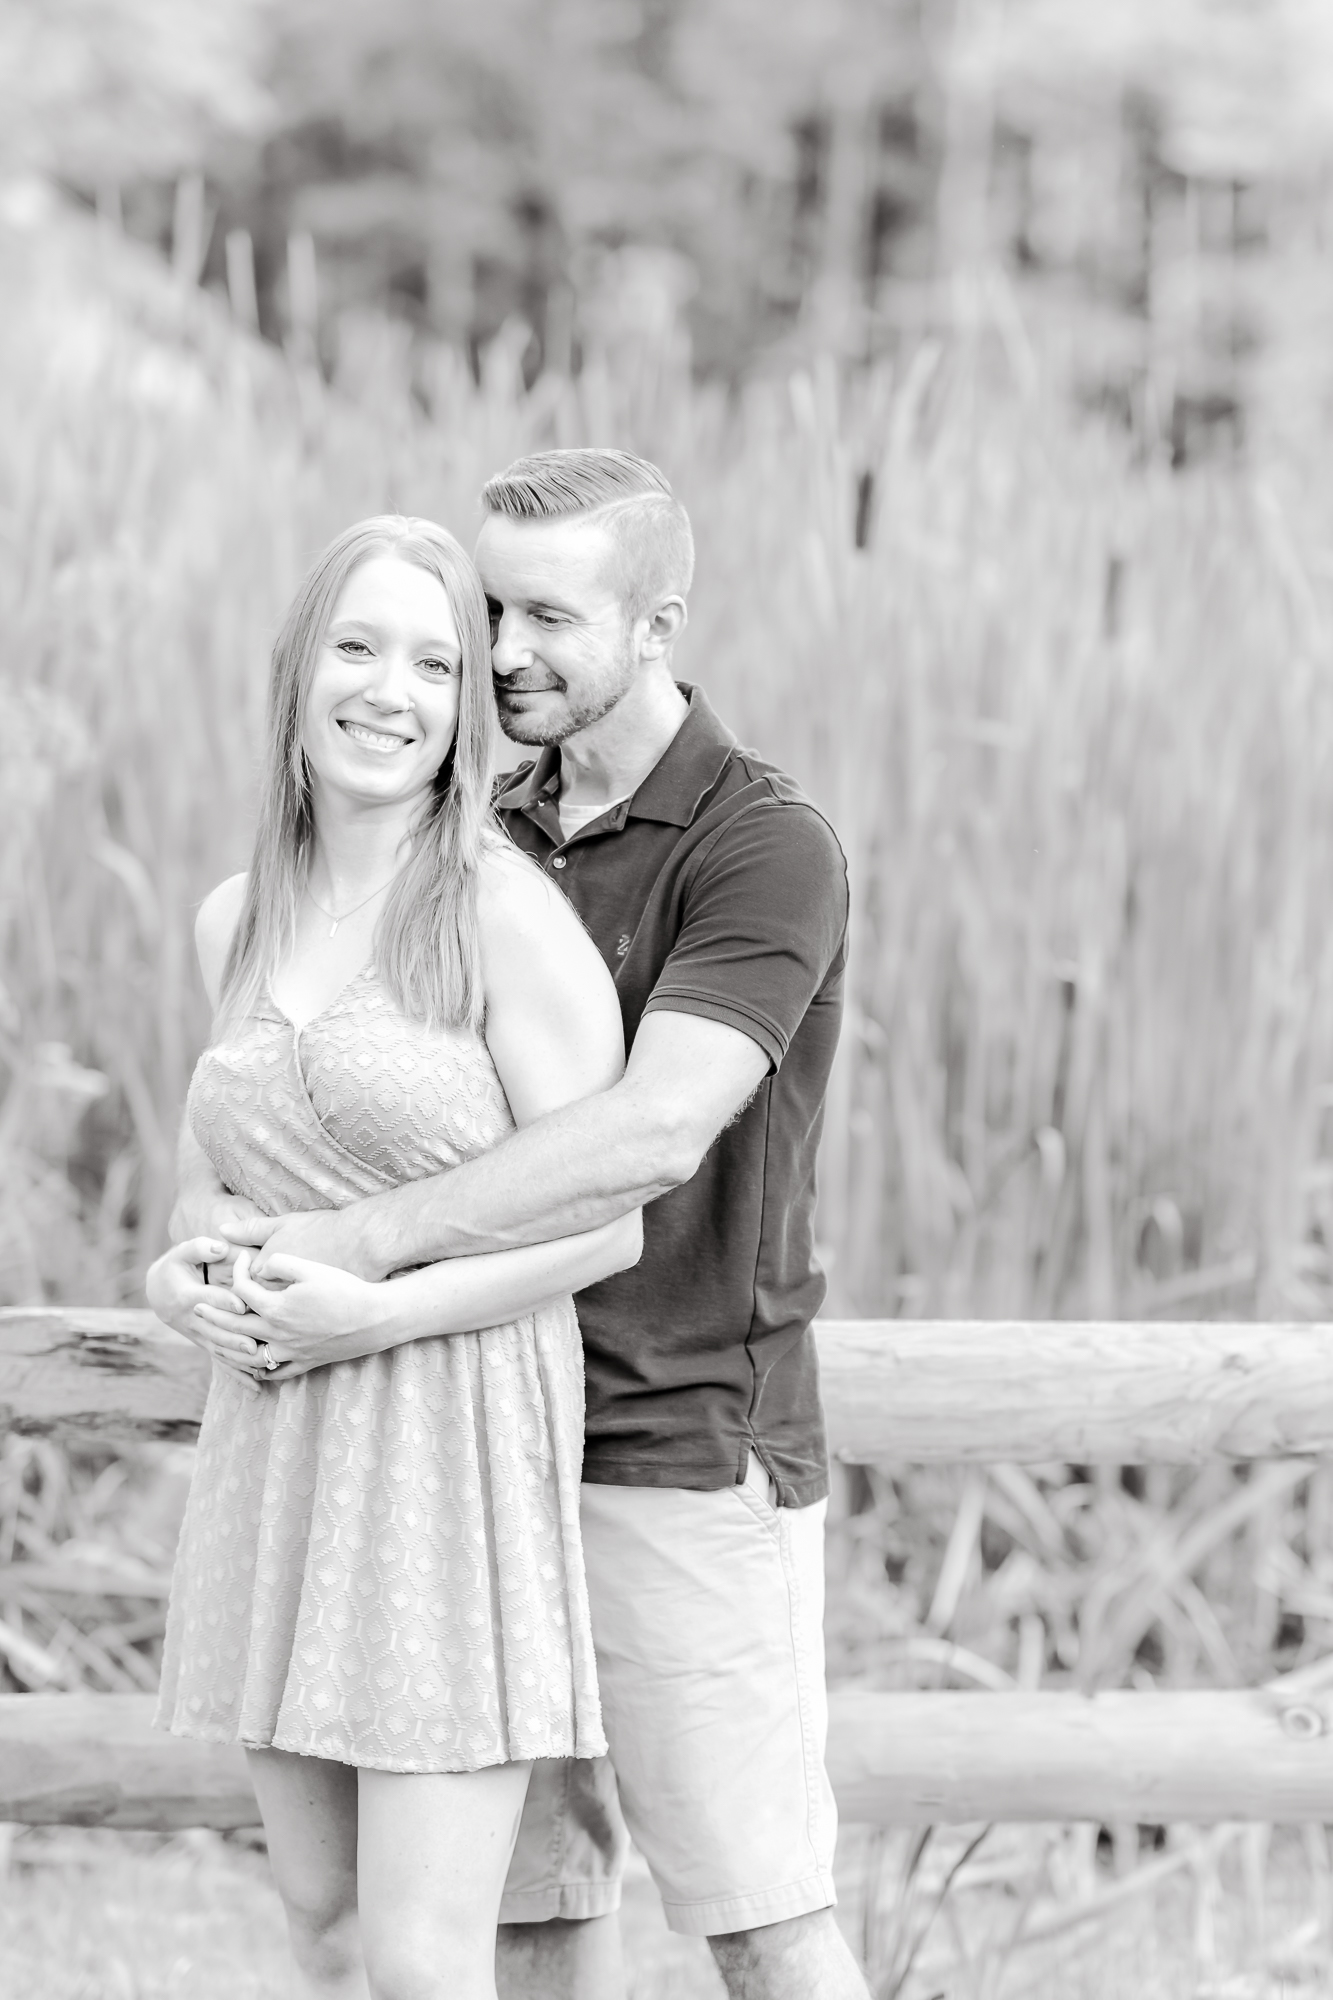 AB Favorites_Katy+Brian_Engagement Session_Brecksville Reservation_Brecksville_Ohio-1.jpg